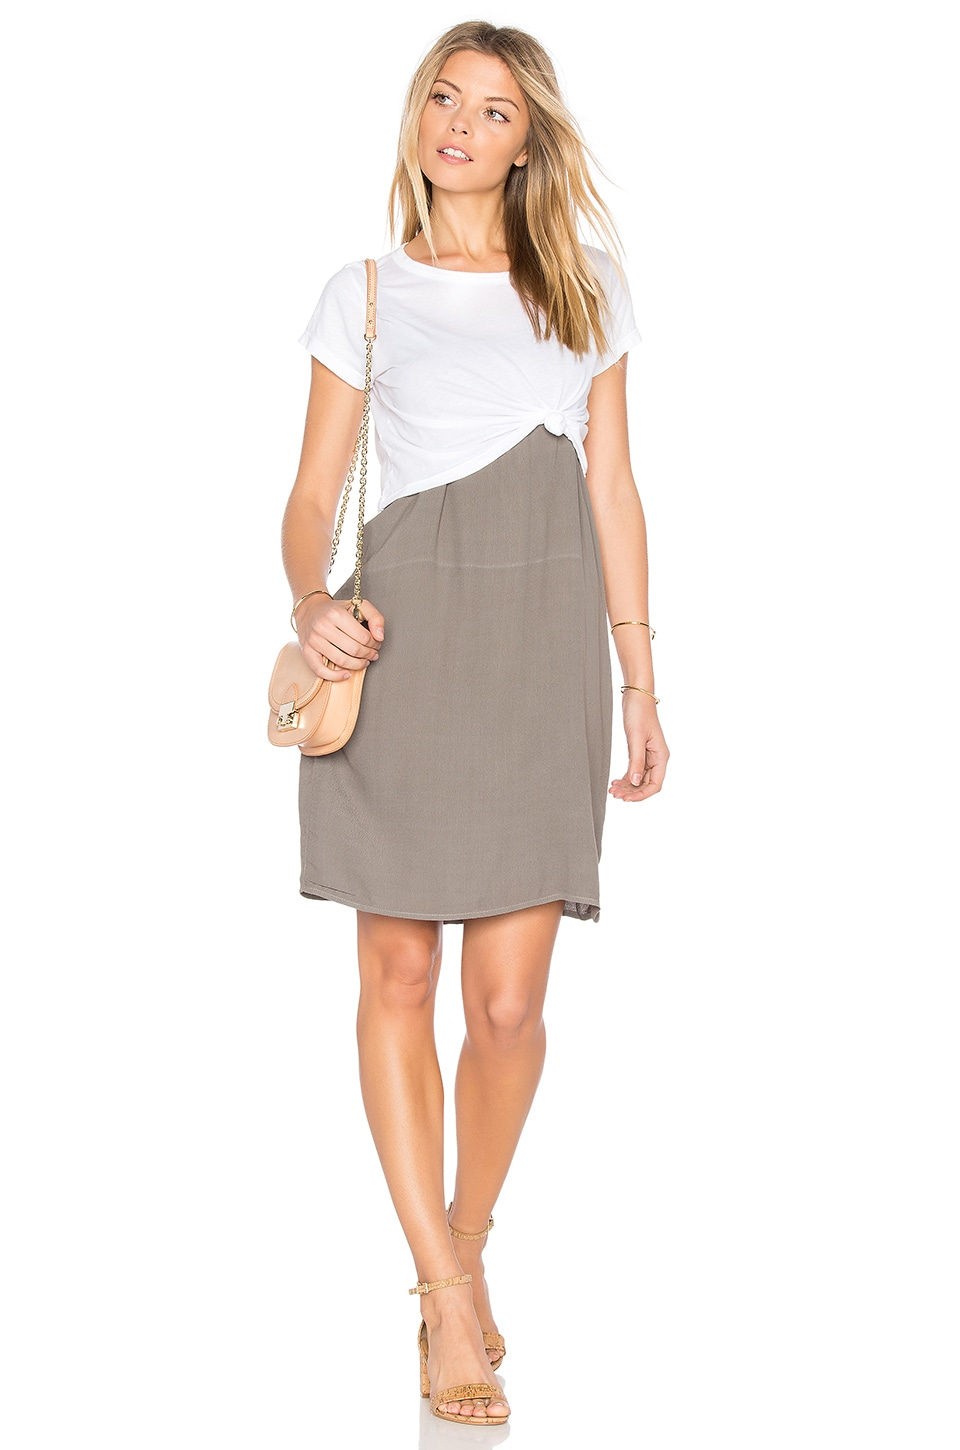 MONROW Cropped Tee With Slip Dress in Ash Green & White